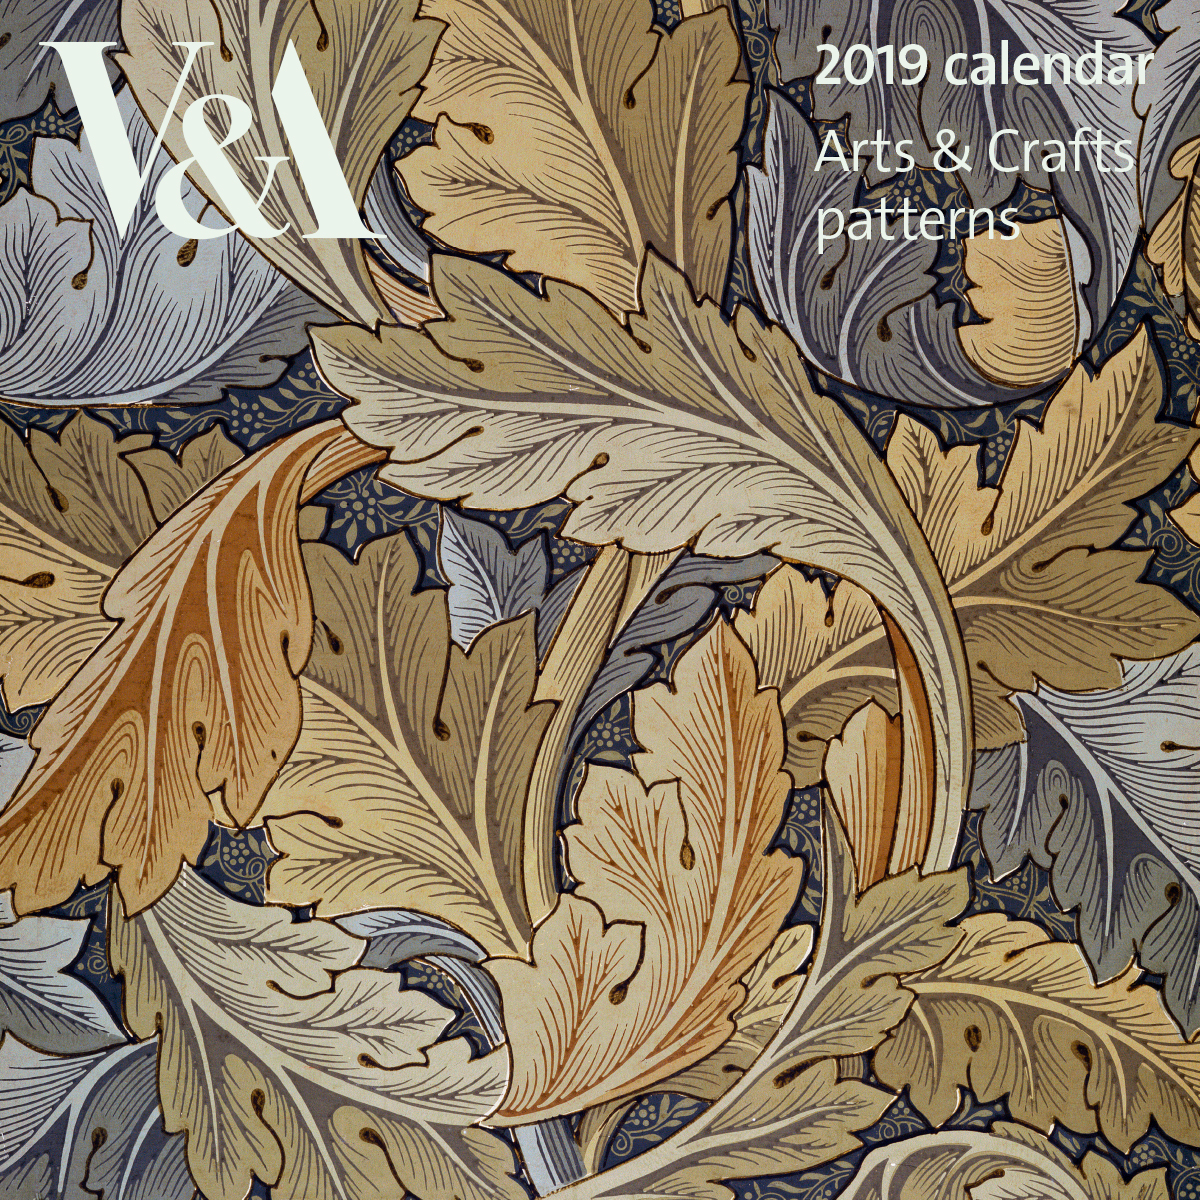 V&A 2019 Arts and Crafts calendar